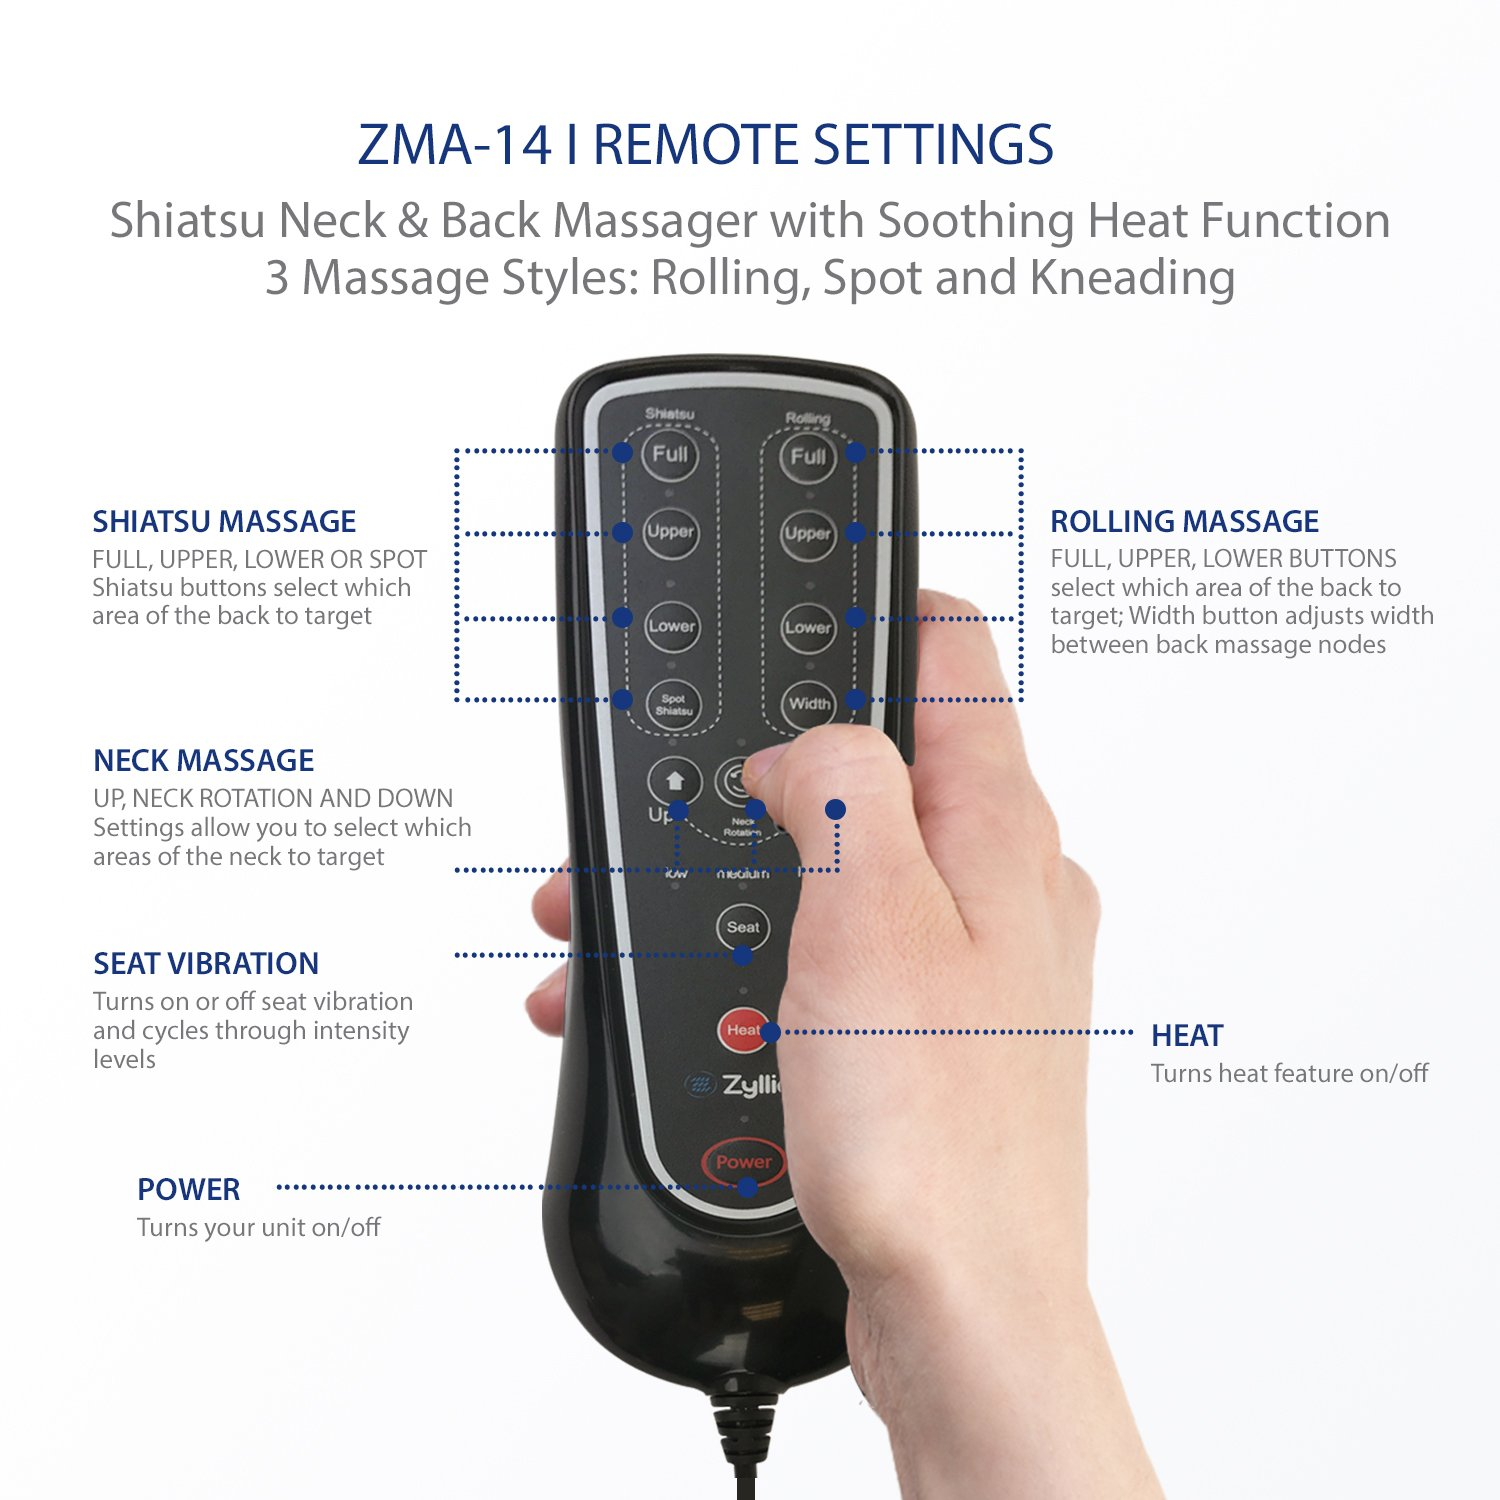 Zyllion ZMA14 Shiatsu Neck & Back Massager Cushion with Soothing Heat Function And 3 Massage Styles Rolling, Spot, and Kneading (Black) One Year Warranty by Zyllion (Image #9)